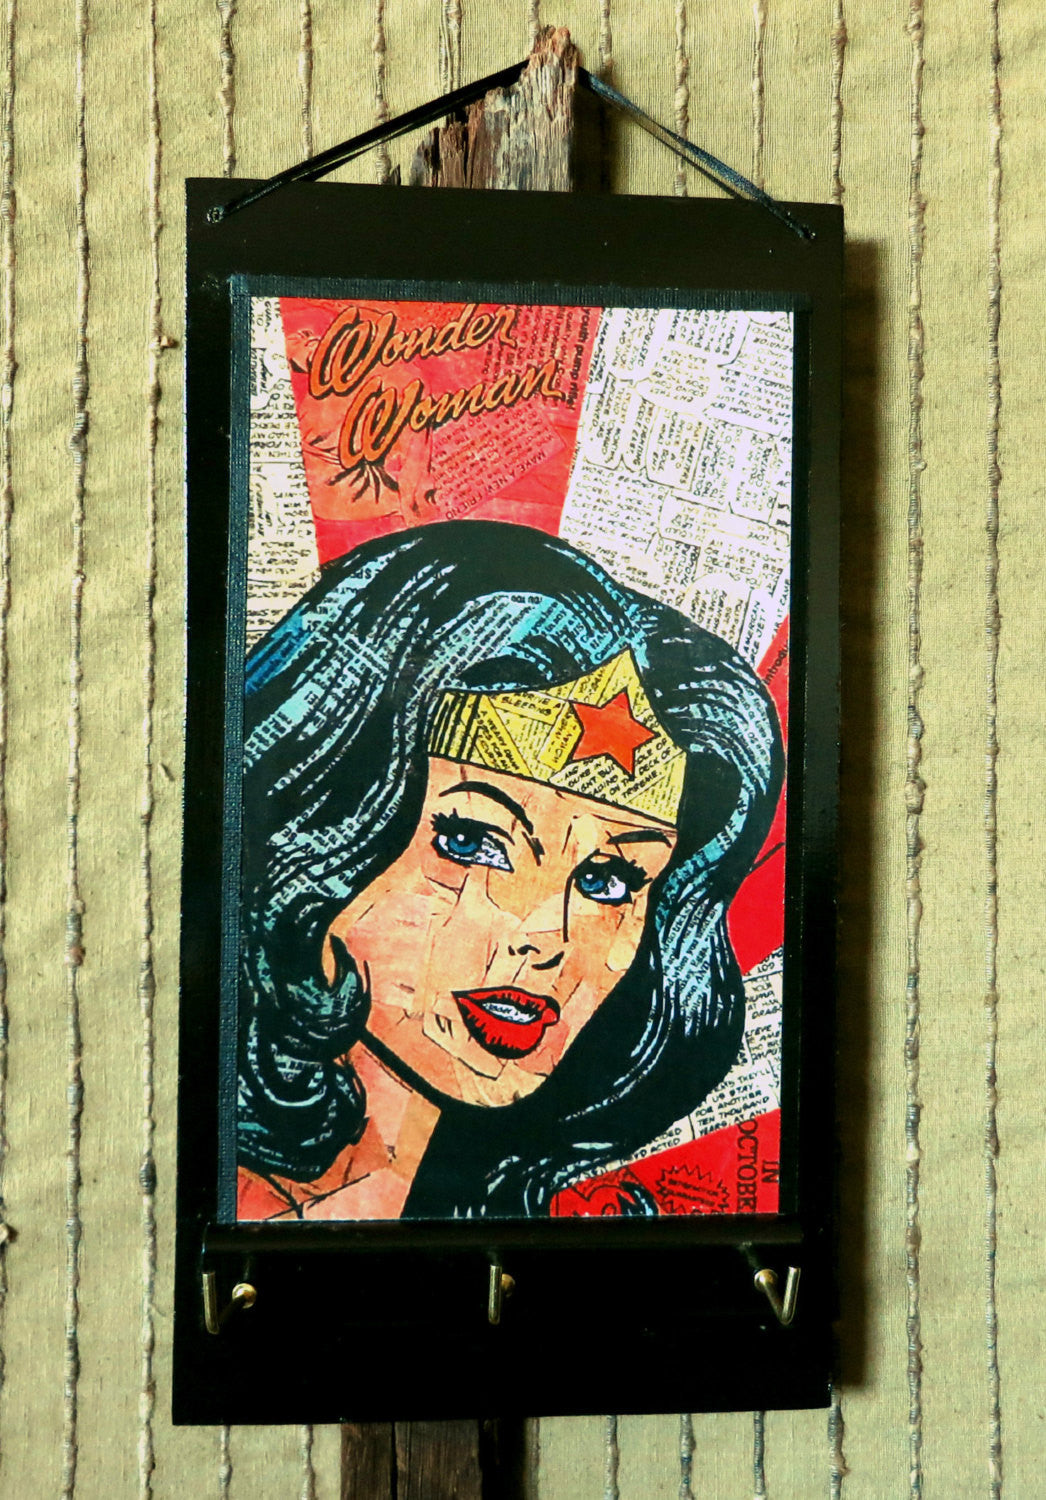 Entryway-Organizer-Wonder-Woman-Key-Rack-Nchanted-Gifts